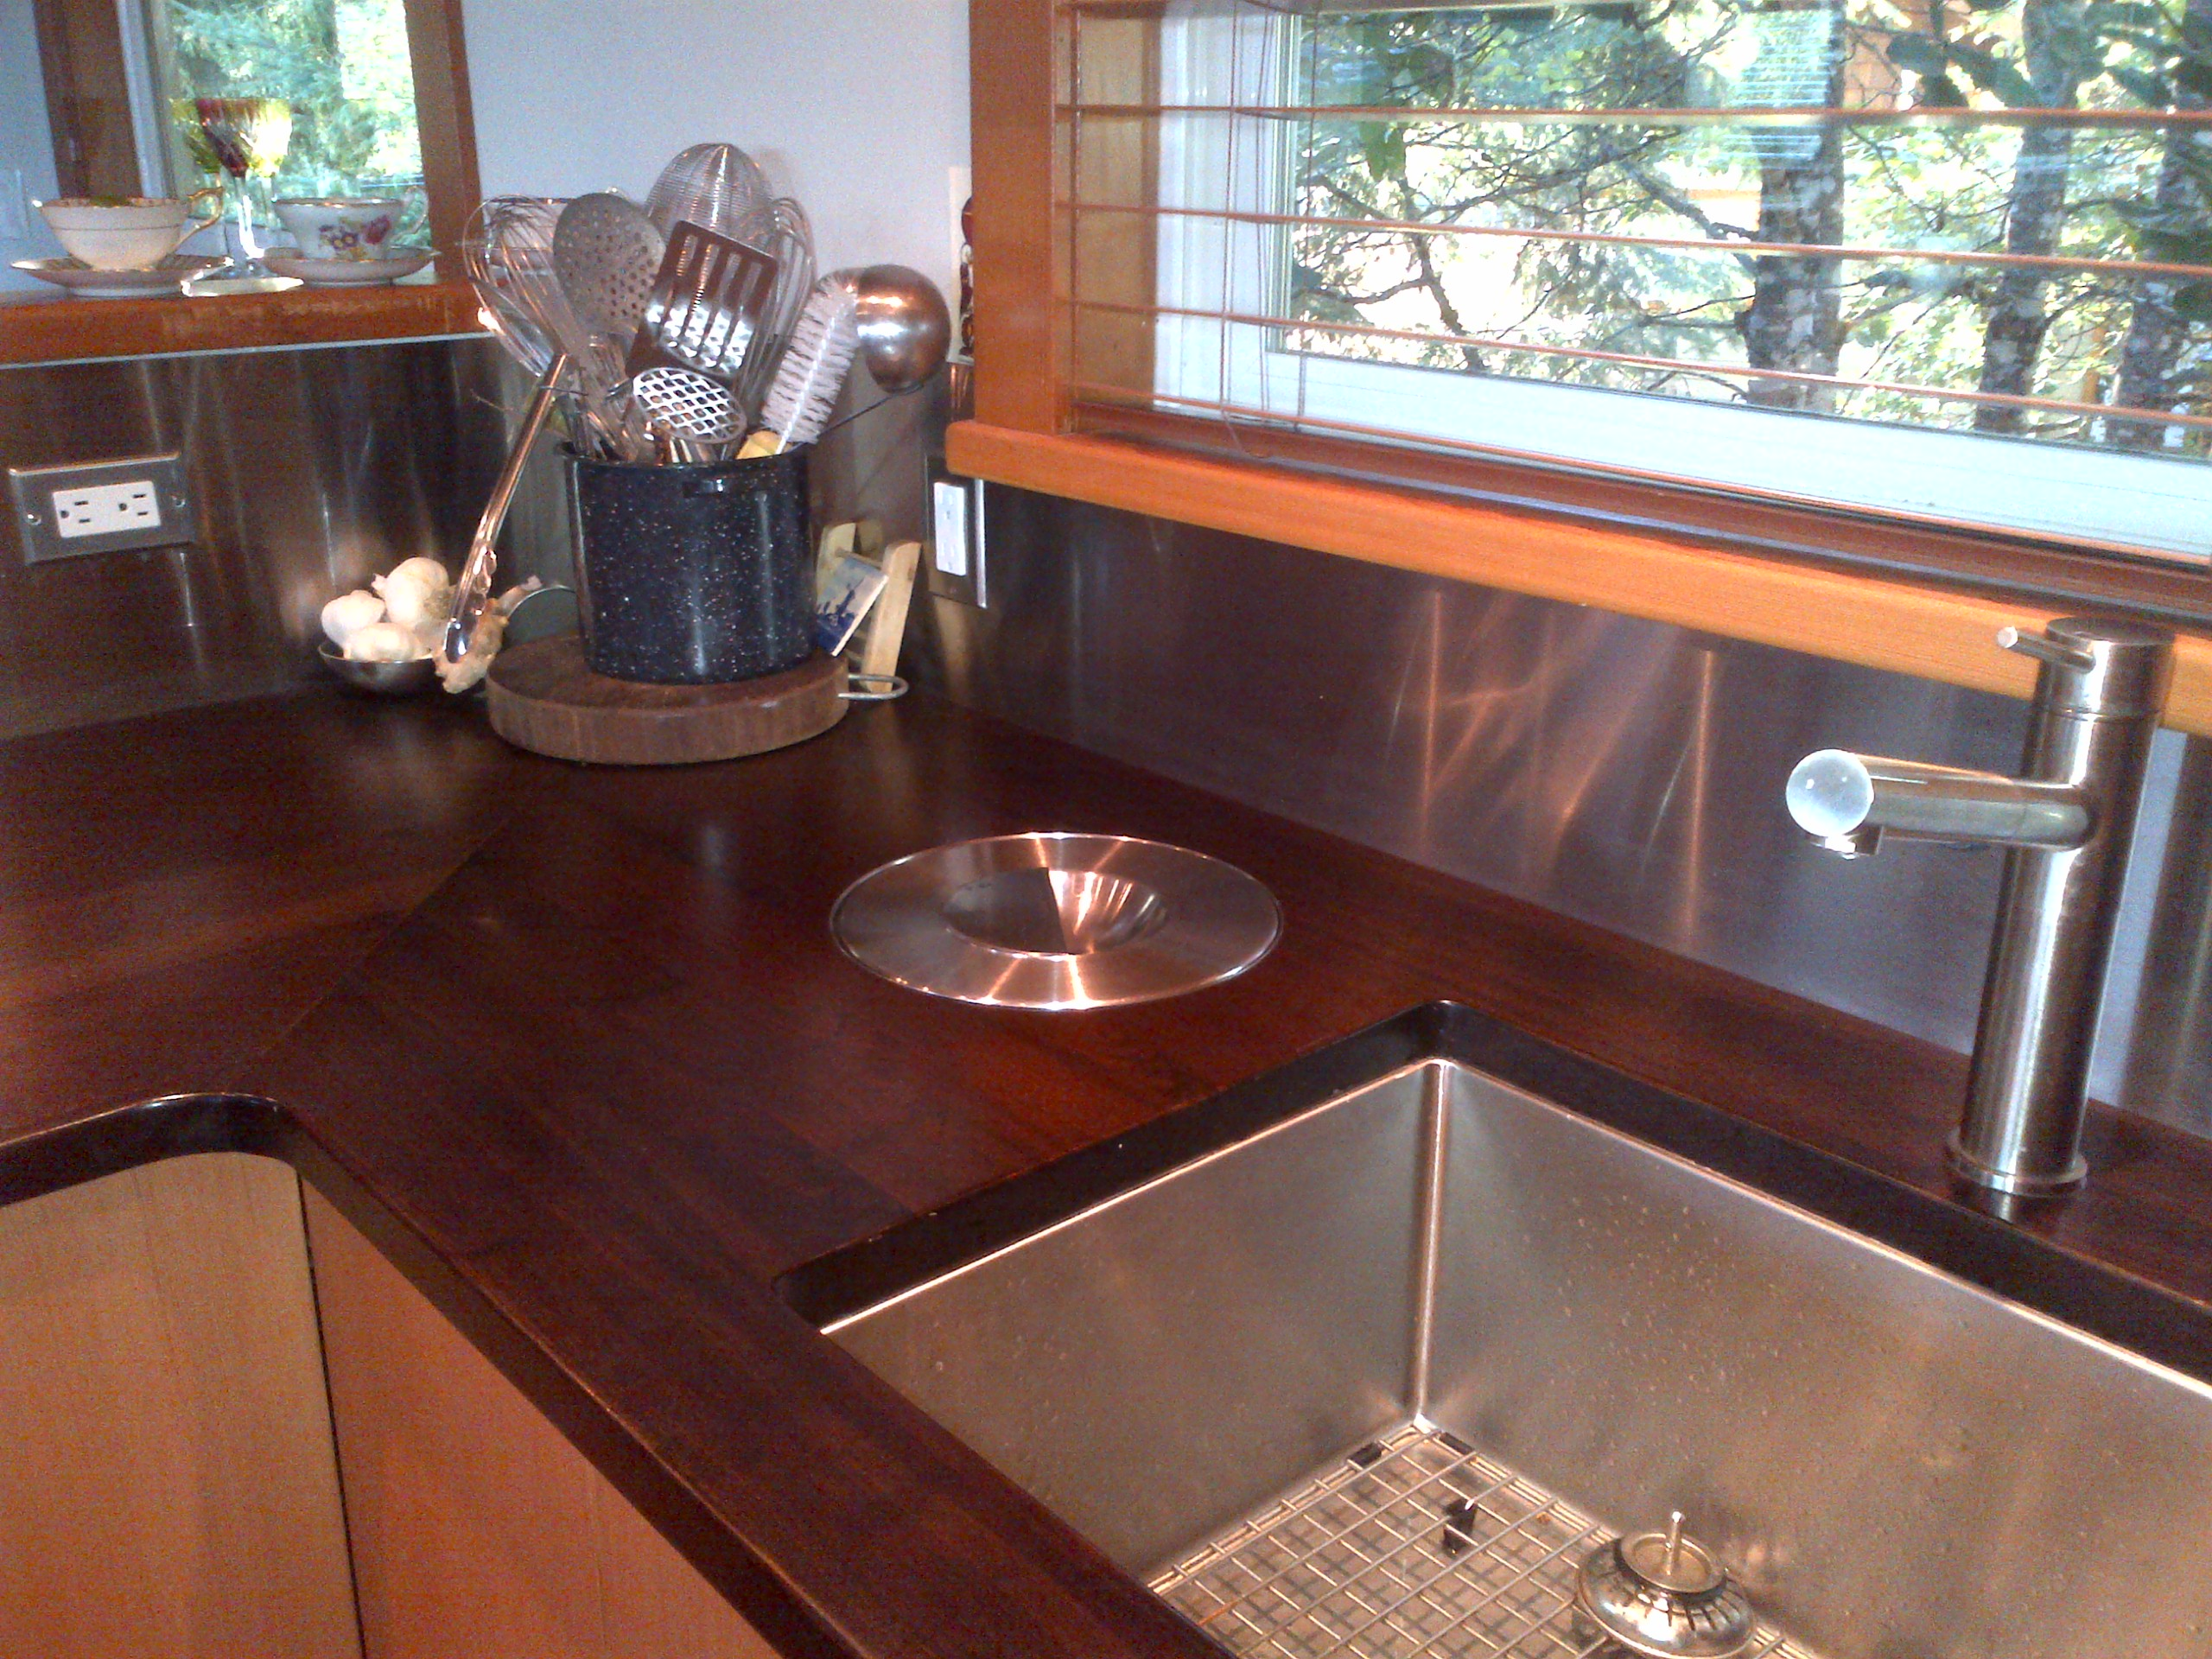 Countertop Compost : Composting Tips: Kitchen Compost Collecting Gets A Makeover